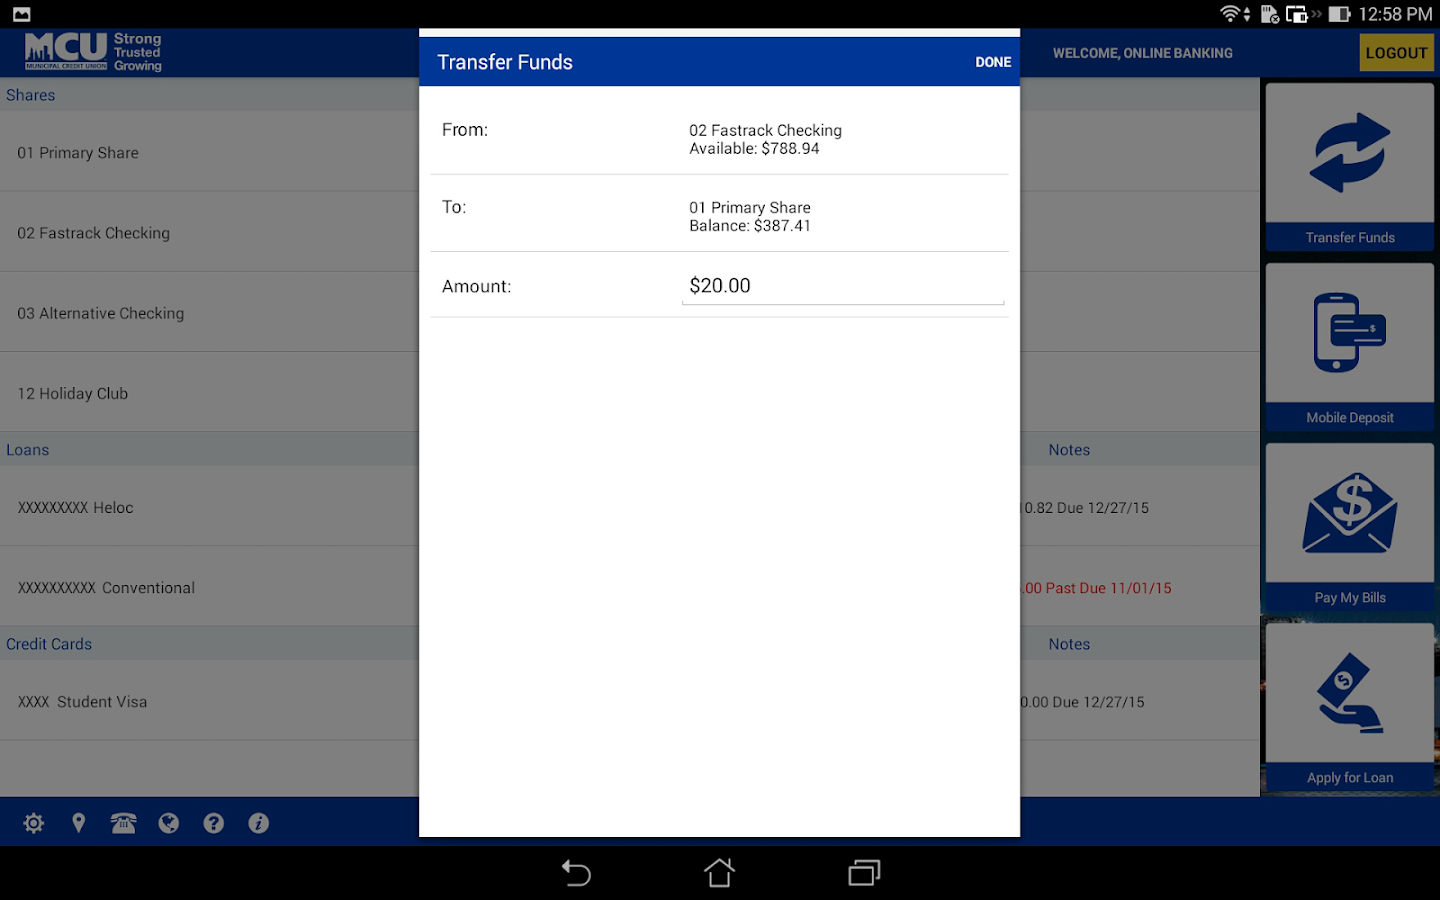 NYMCU Mobile Banking- screenshot